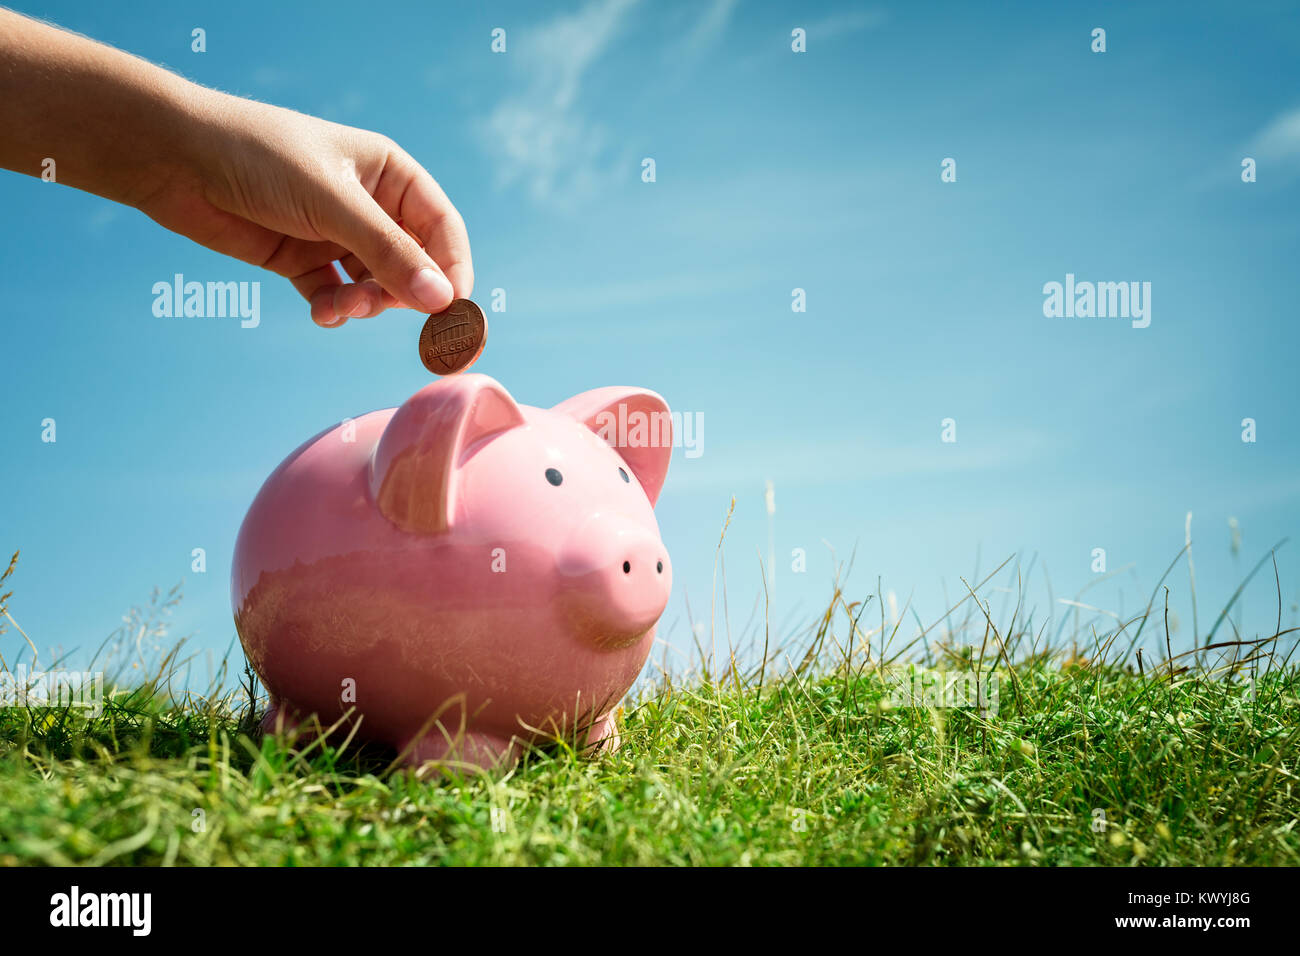 Child hand inserting coin and saving money in piggy bank with grass and blue sky background - Stock Image